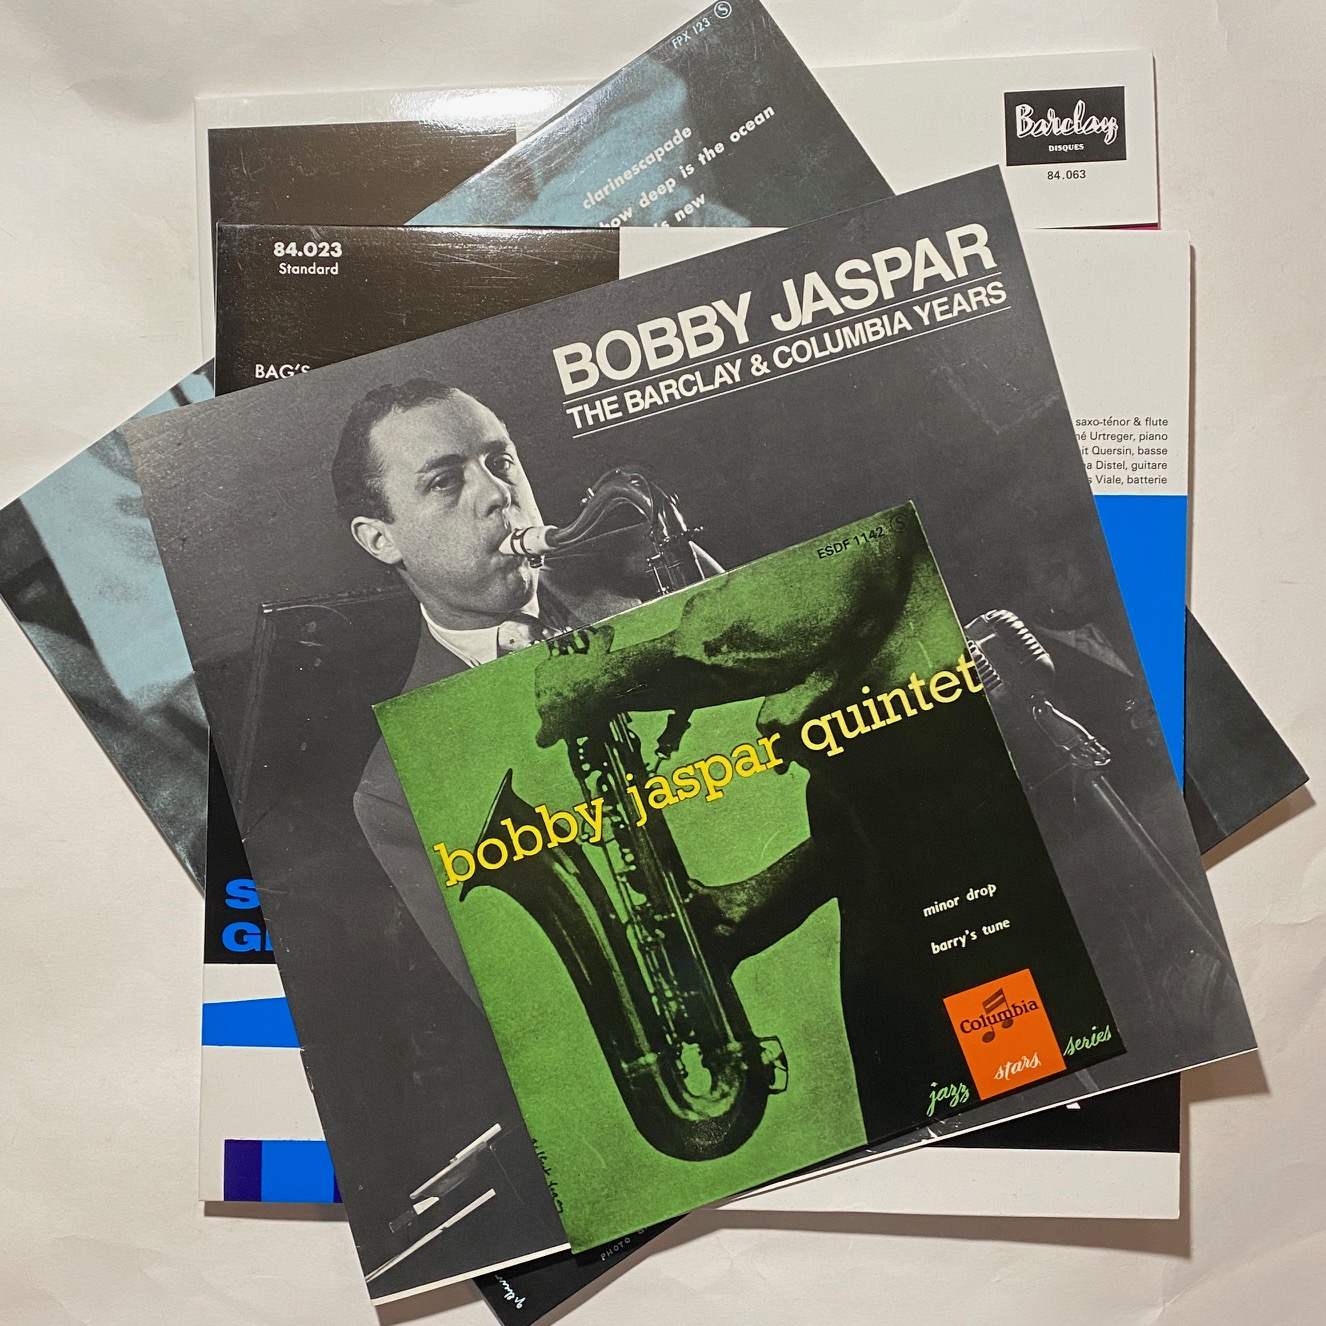 Bobby Jaspar The Barclay And Columbia Years